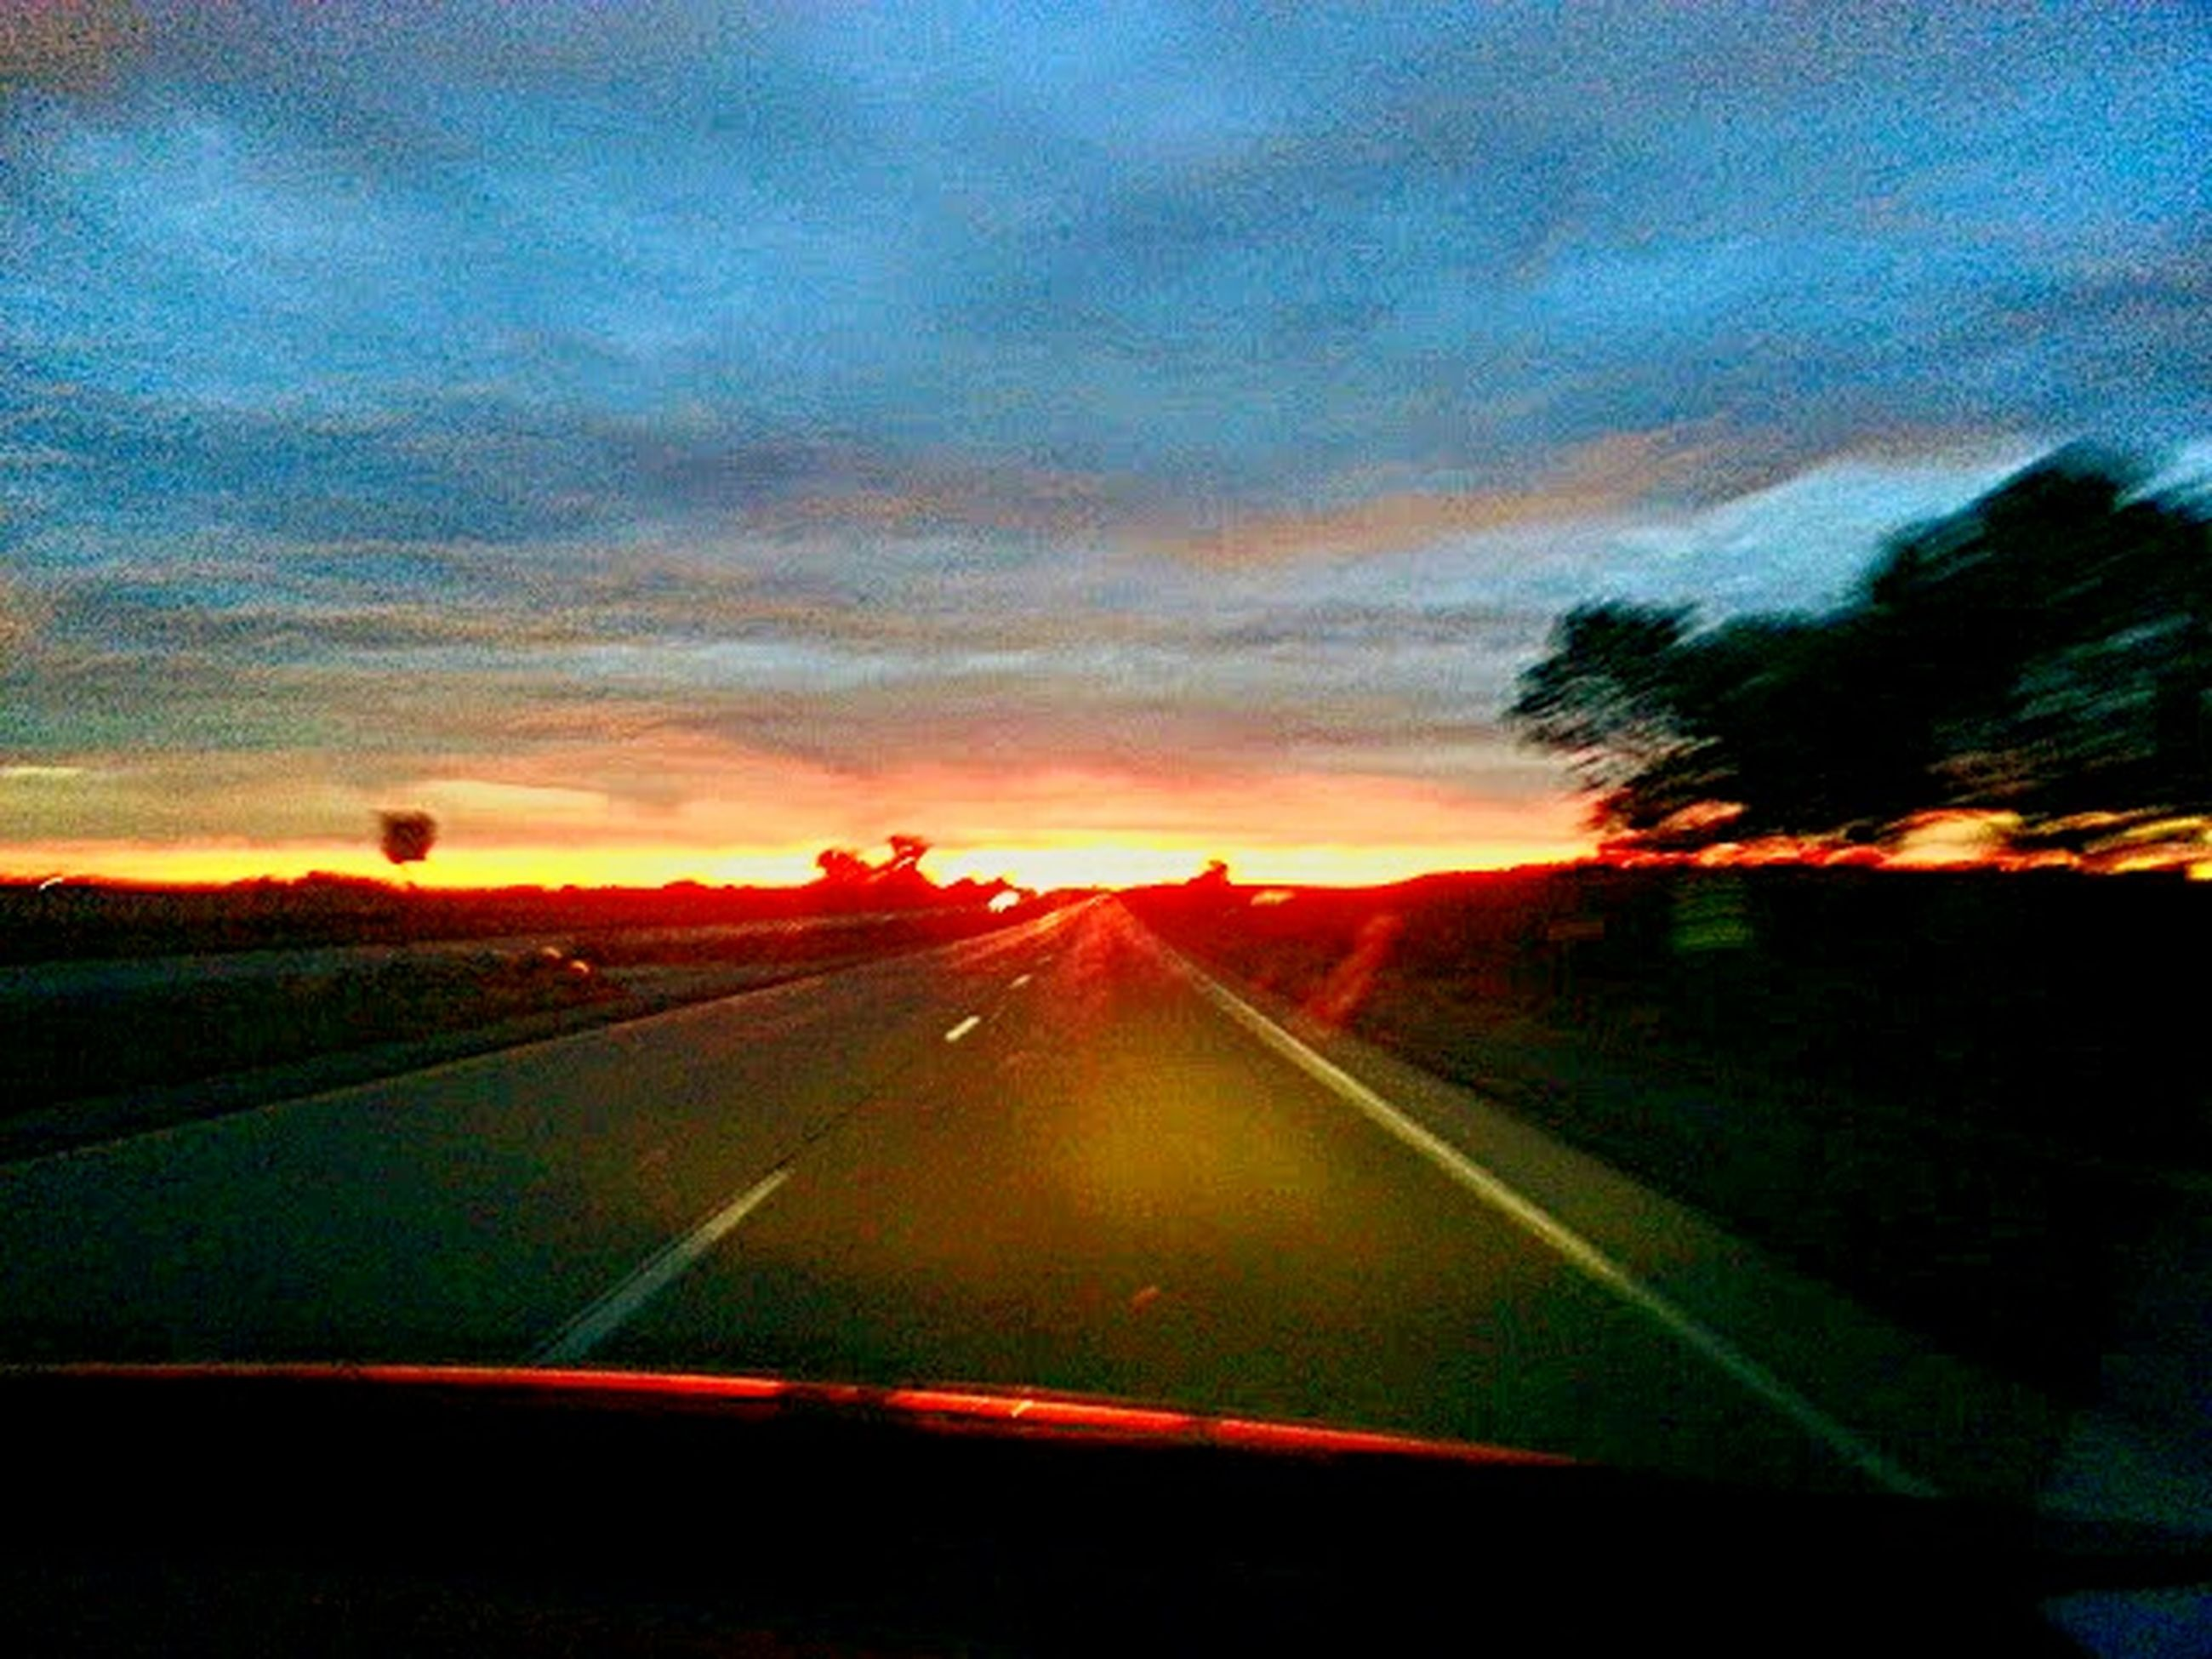 transportation, sunset, sky, road, car, mode of transport, land vehicle, cloud - sky, vehicle interior, windshield, the way forward, diminishing perspective, glass - material, transparent, road marking, orange color, car interior, travel, cloud, car point of view